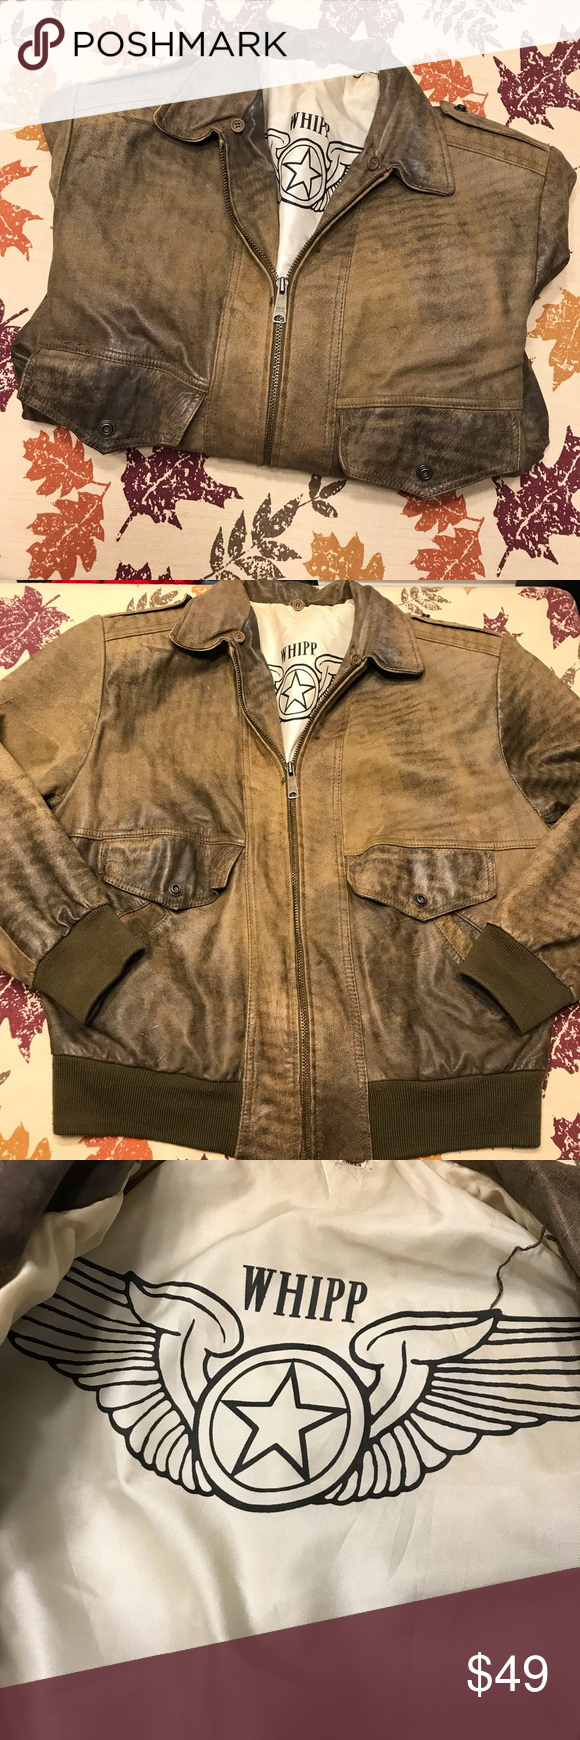 Whipp Soft Leather Bomber Jacket Large Super Soft Leather. Brownish/Olive in color. Padded shoulders. 23in Armpit to Armpit. Smoke/Pet Free. No rips/stains. Whipp Jackets & Coats Bomber & Varsity